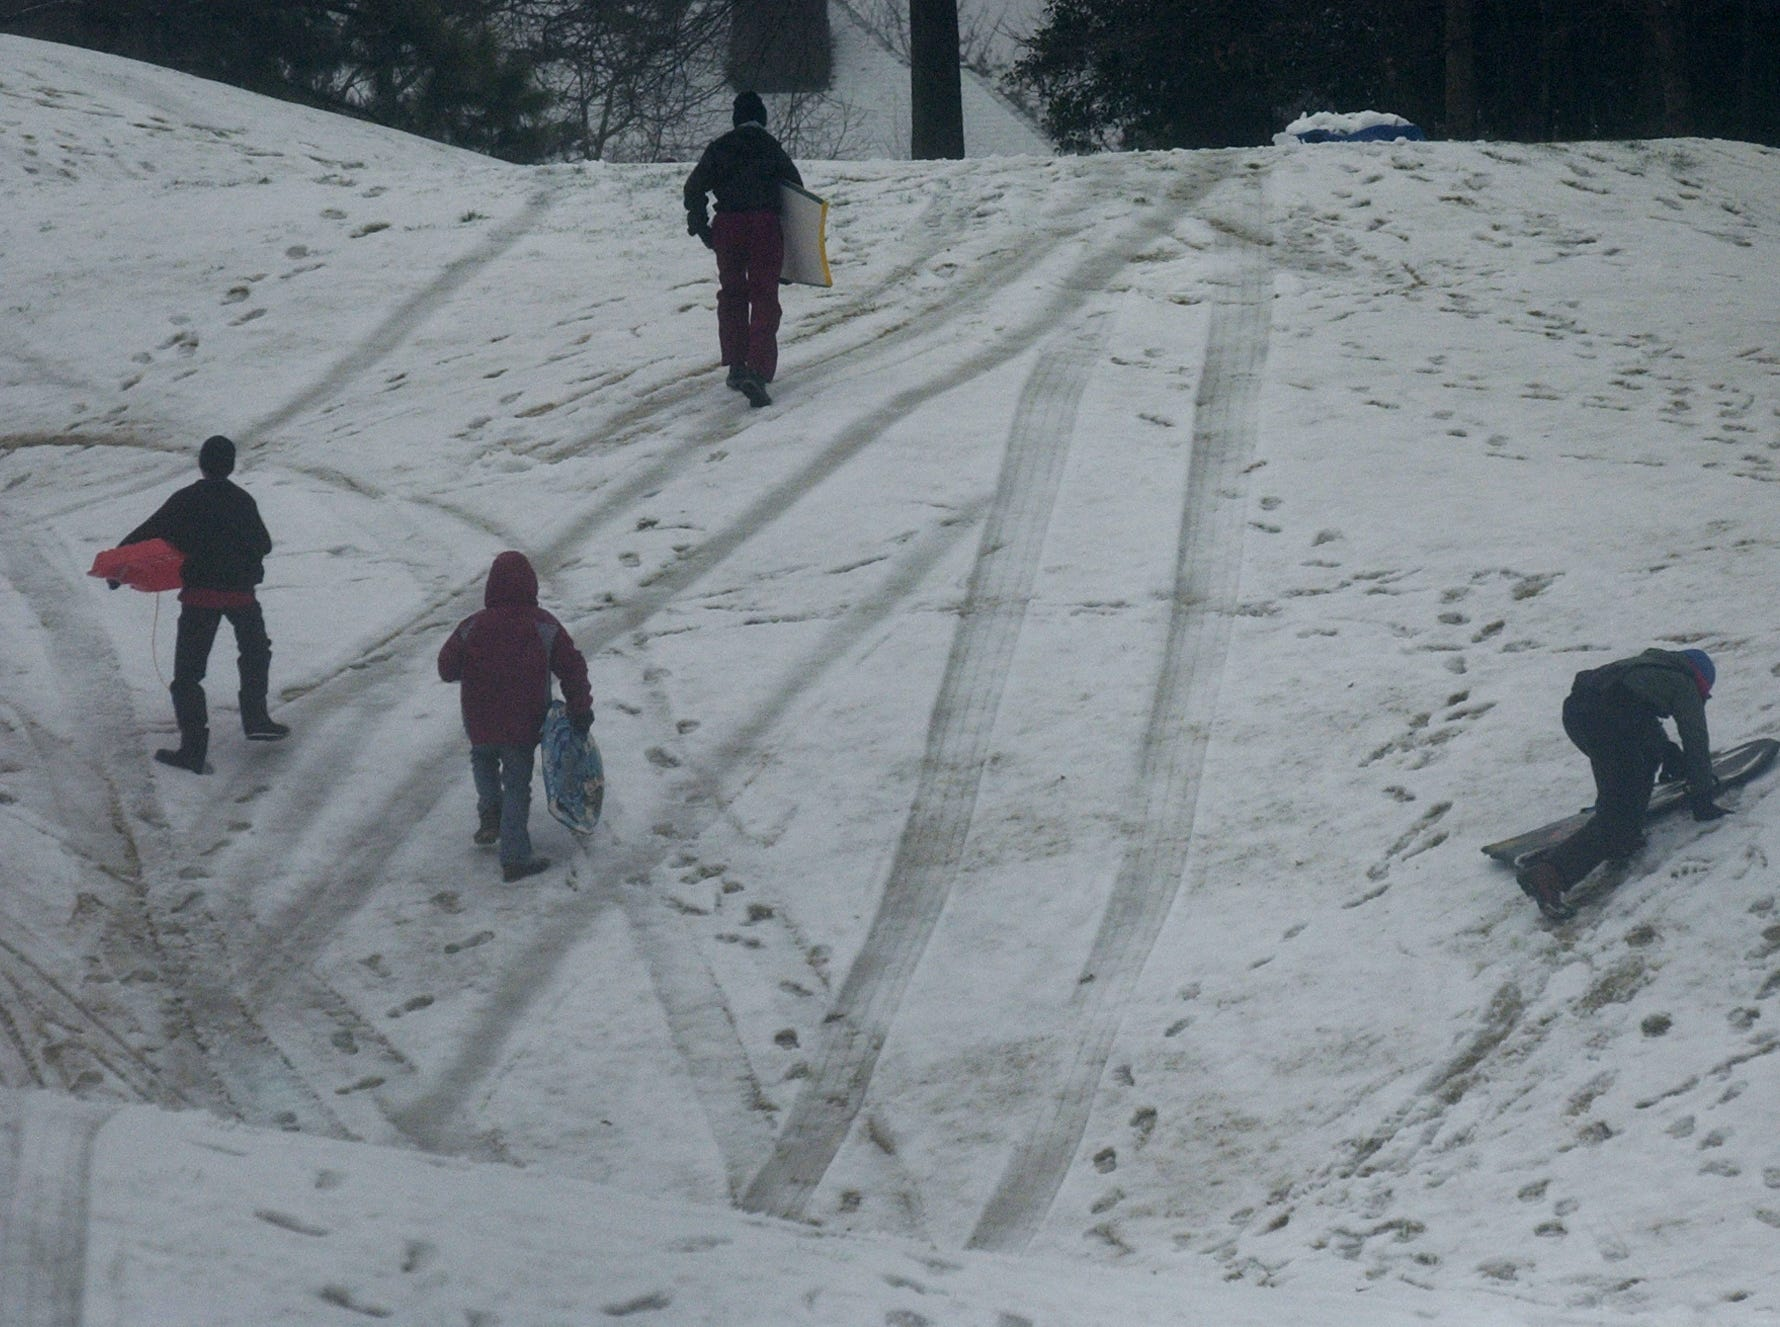 Children climb up a hill with sleds in the Thornblade subdivision on Thursday, February 1, 2007.